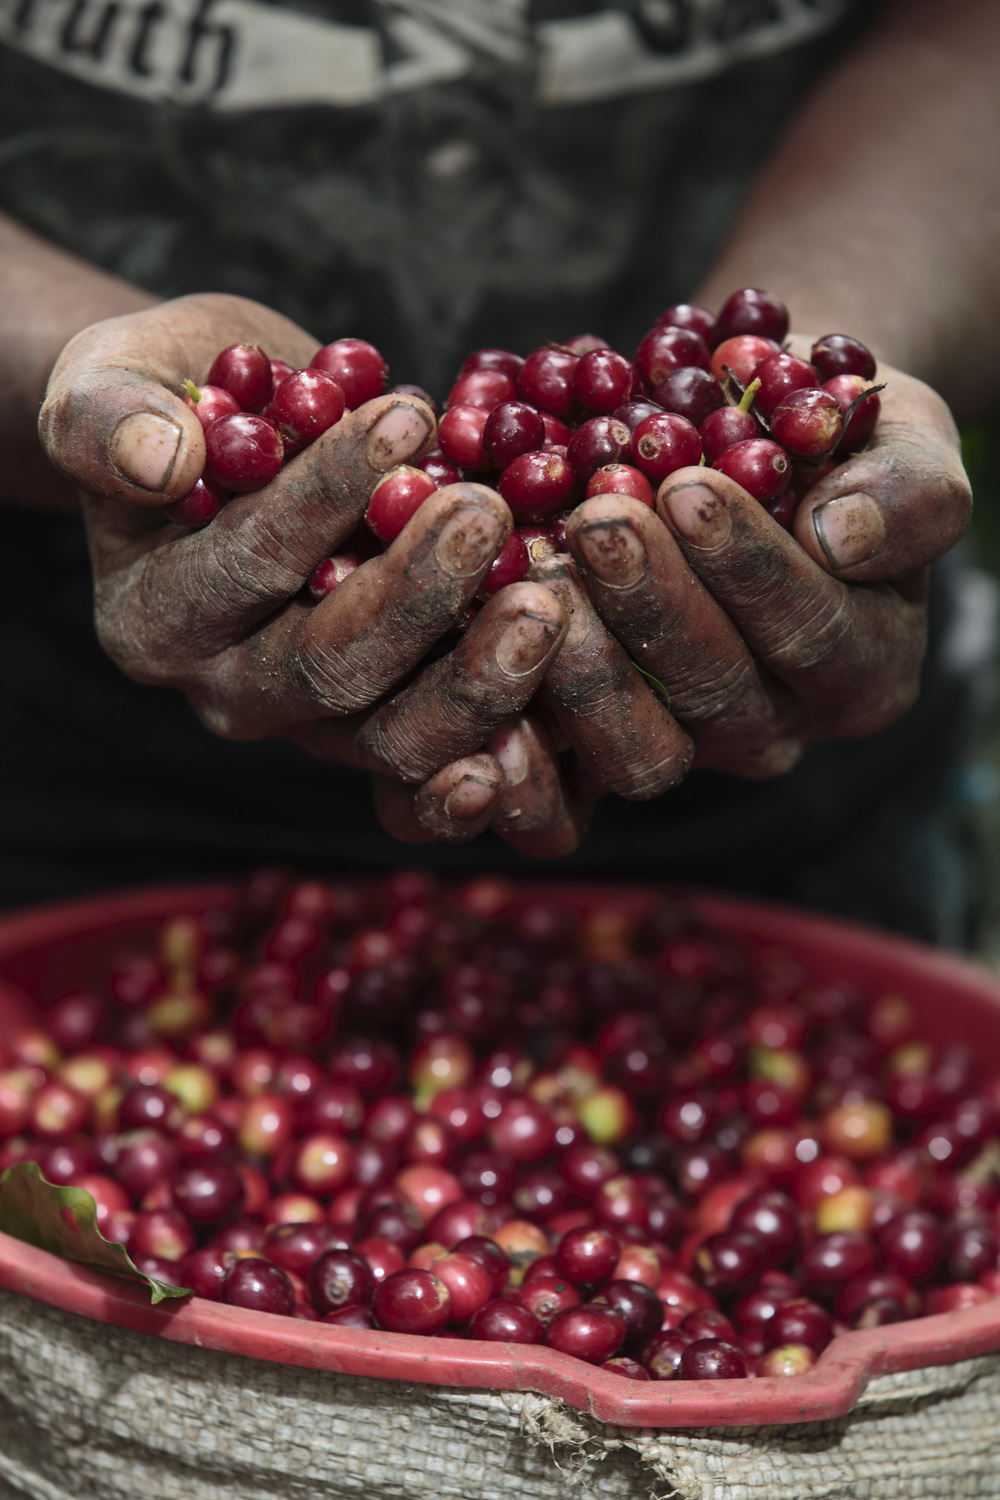 Coffee grows on small bushes inside these red berries, which are then husked to reveal green beans. The beans are cleaned, dried, and finally roasted. Photo: CRS